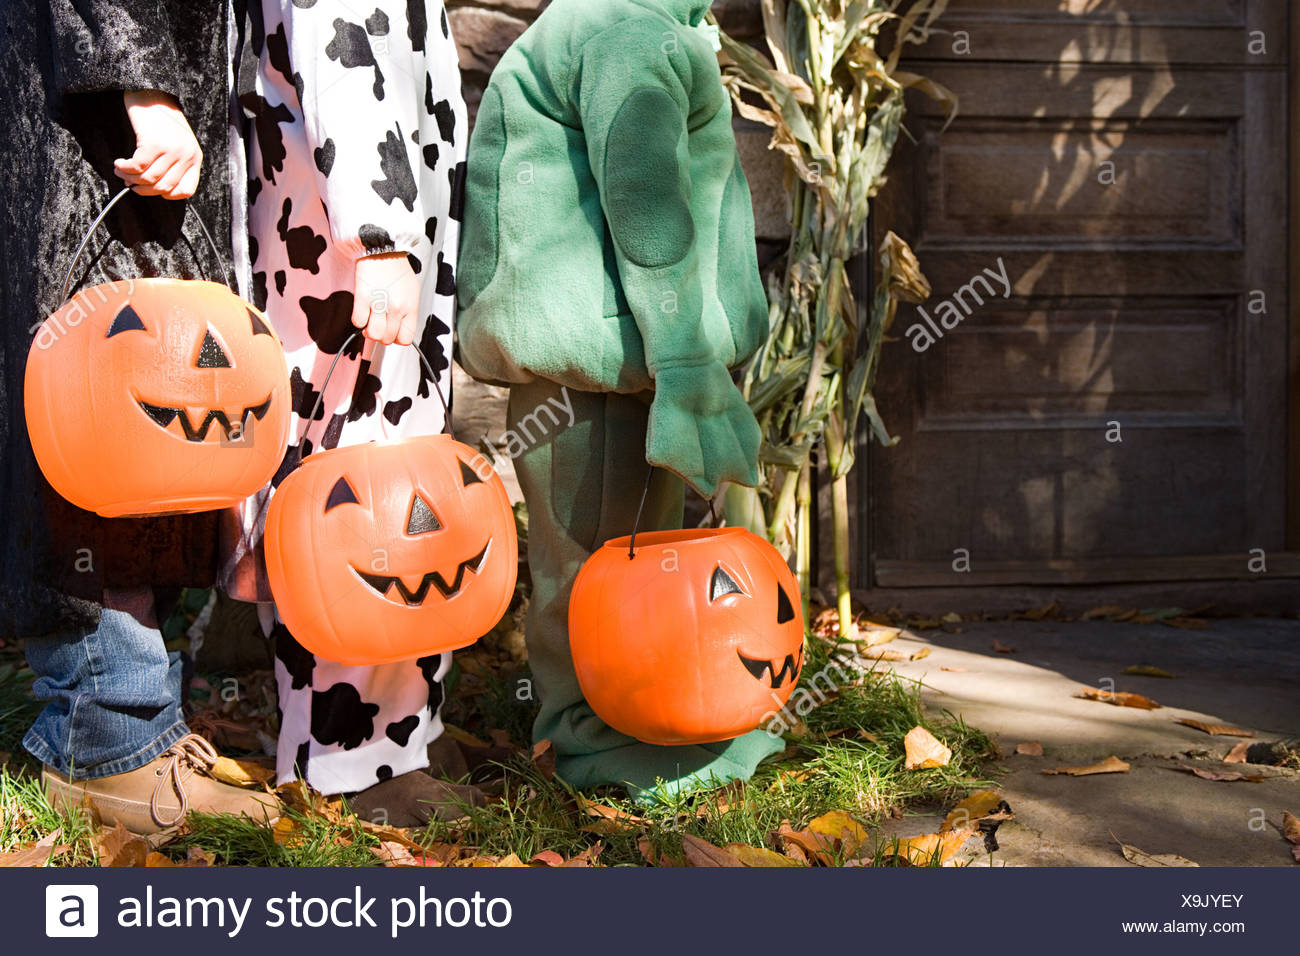 Trick or treaters - Stock Image